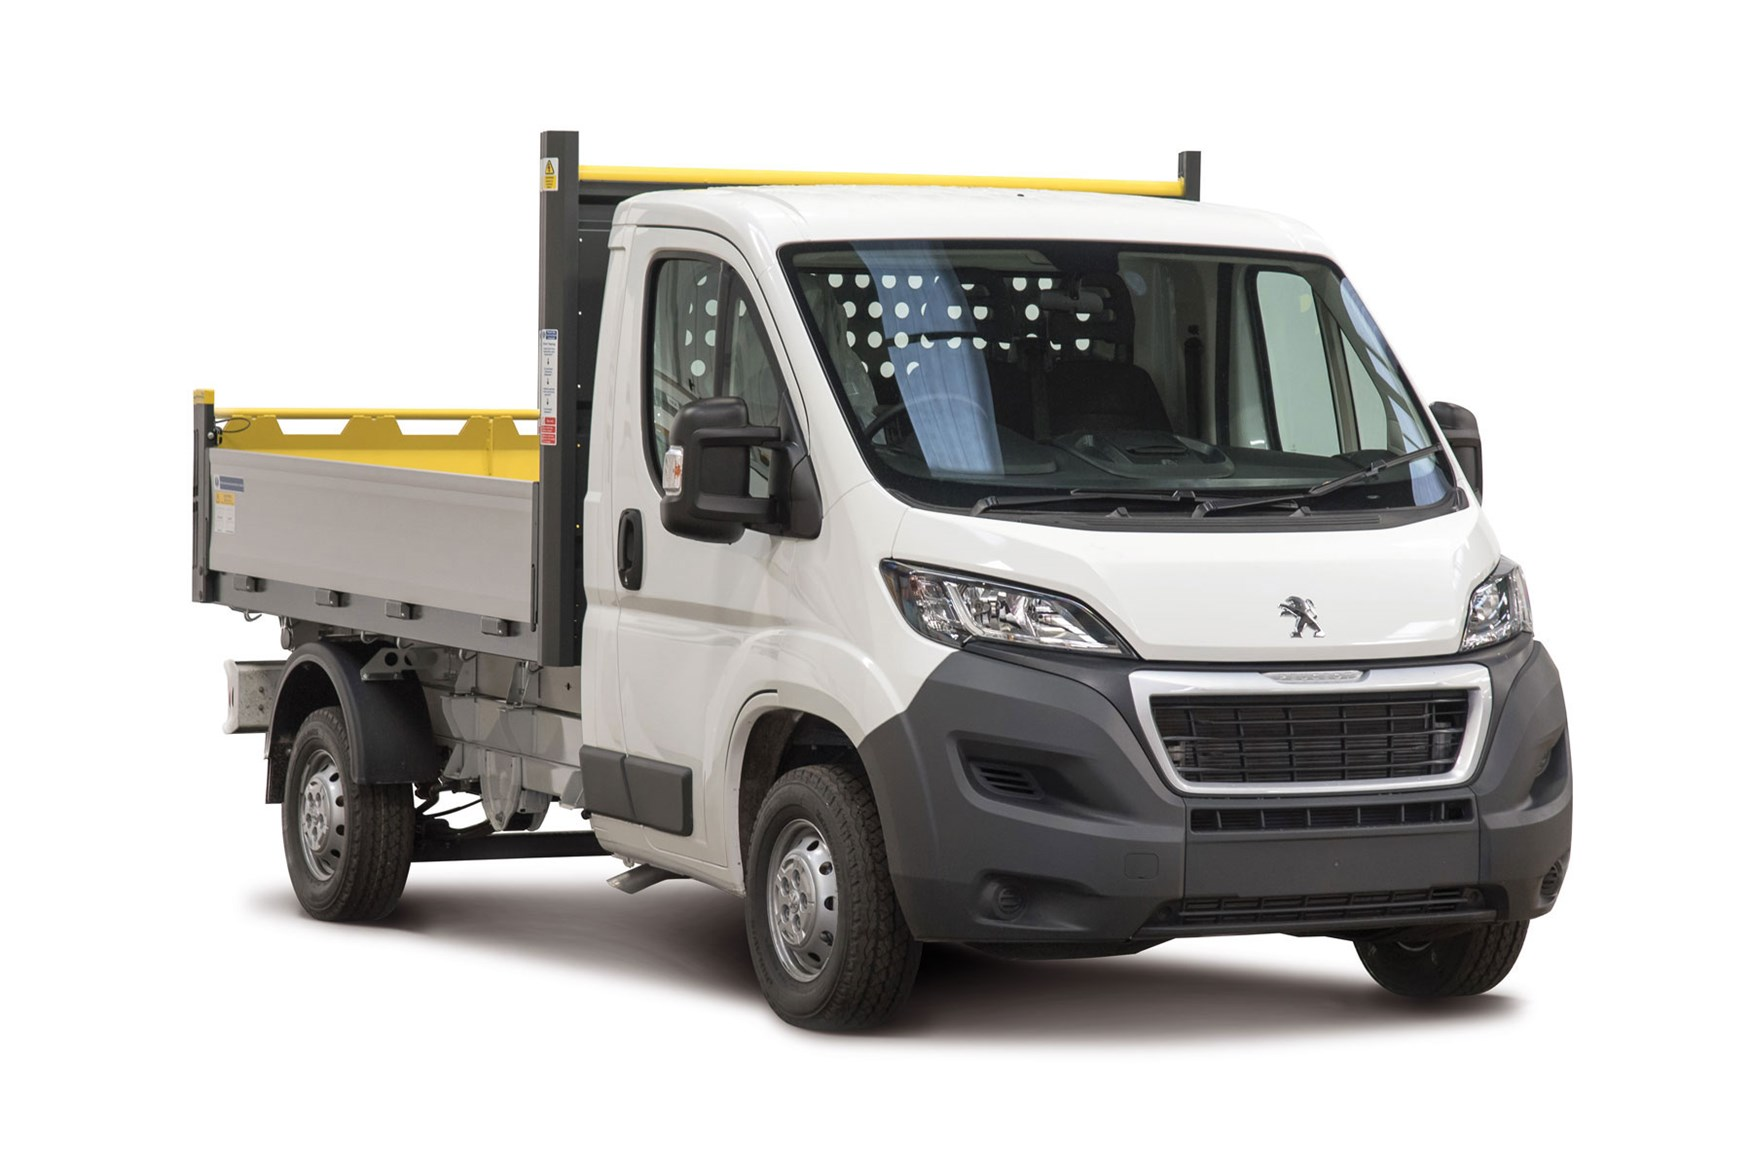 Peugeot Boxer Tipper from Built for Business conversions range